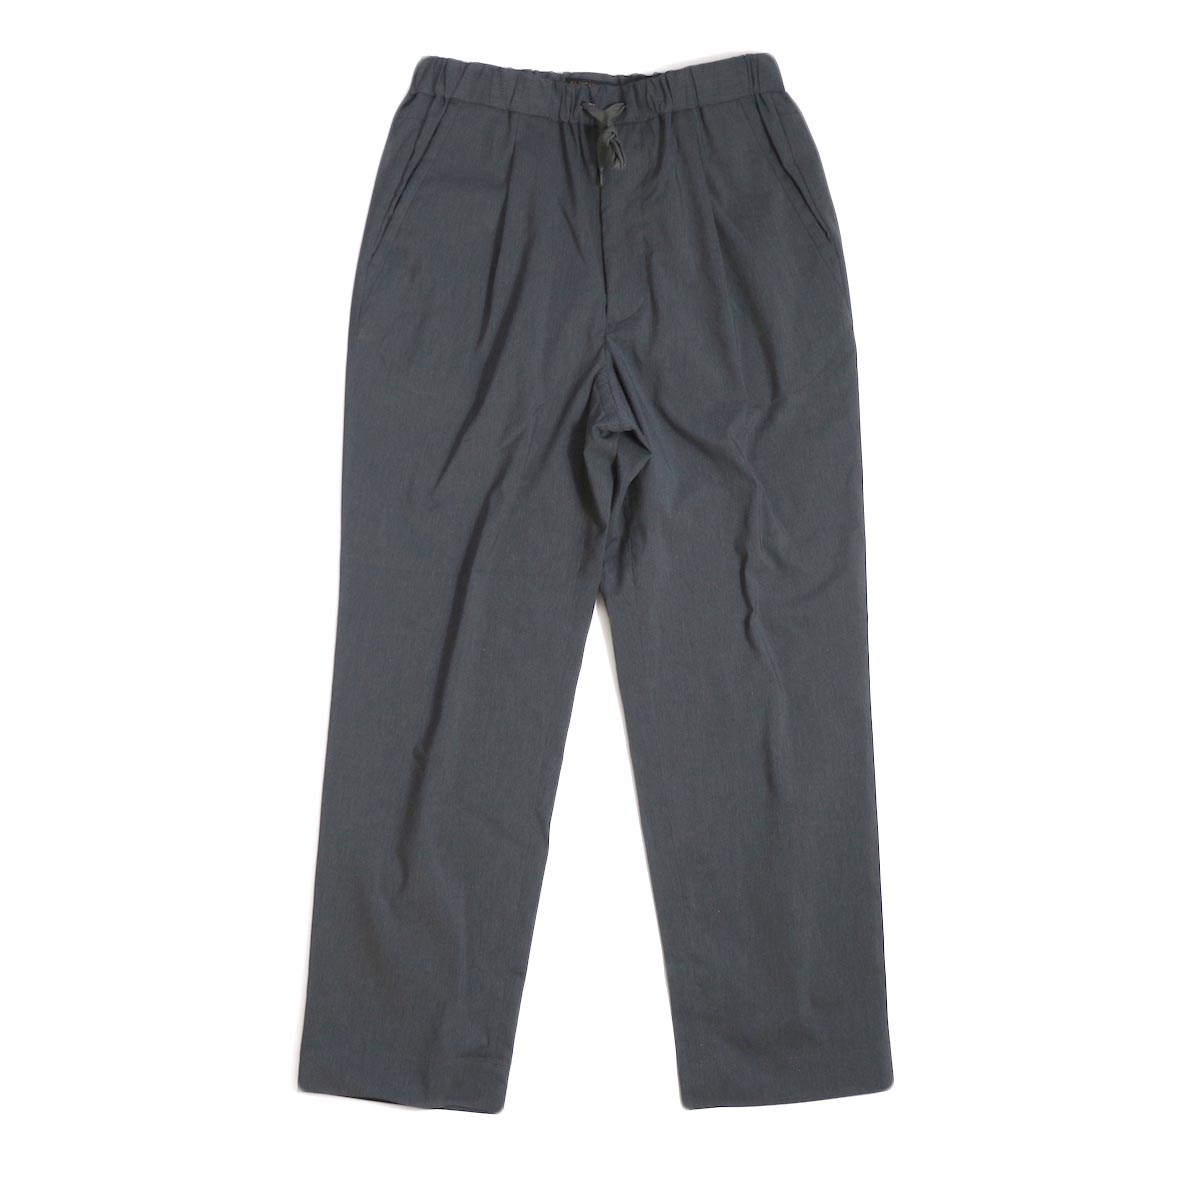 A VONTADE / 1 Tuck Tapered Easy Trousers -Charcoal